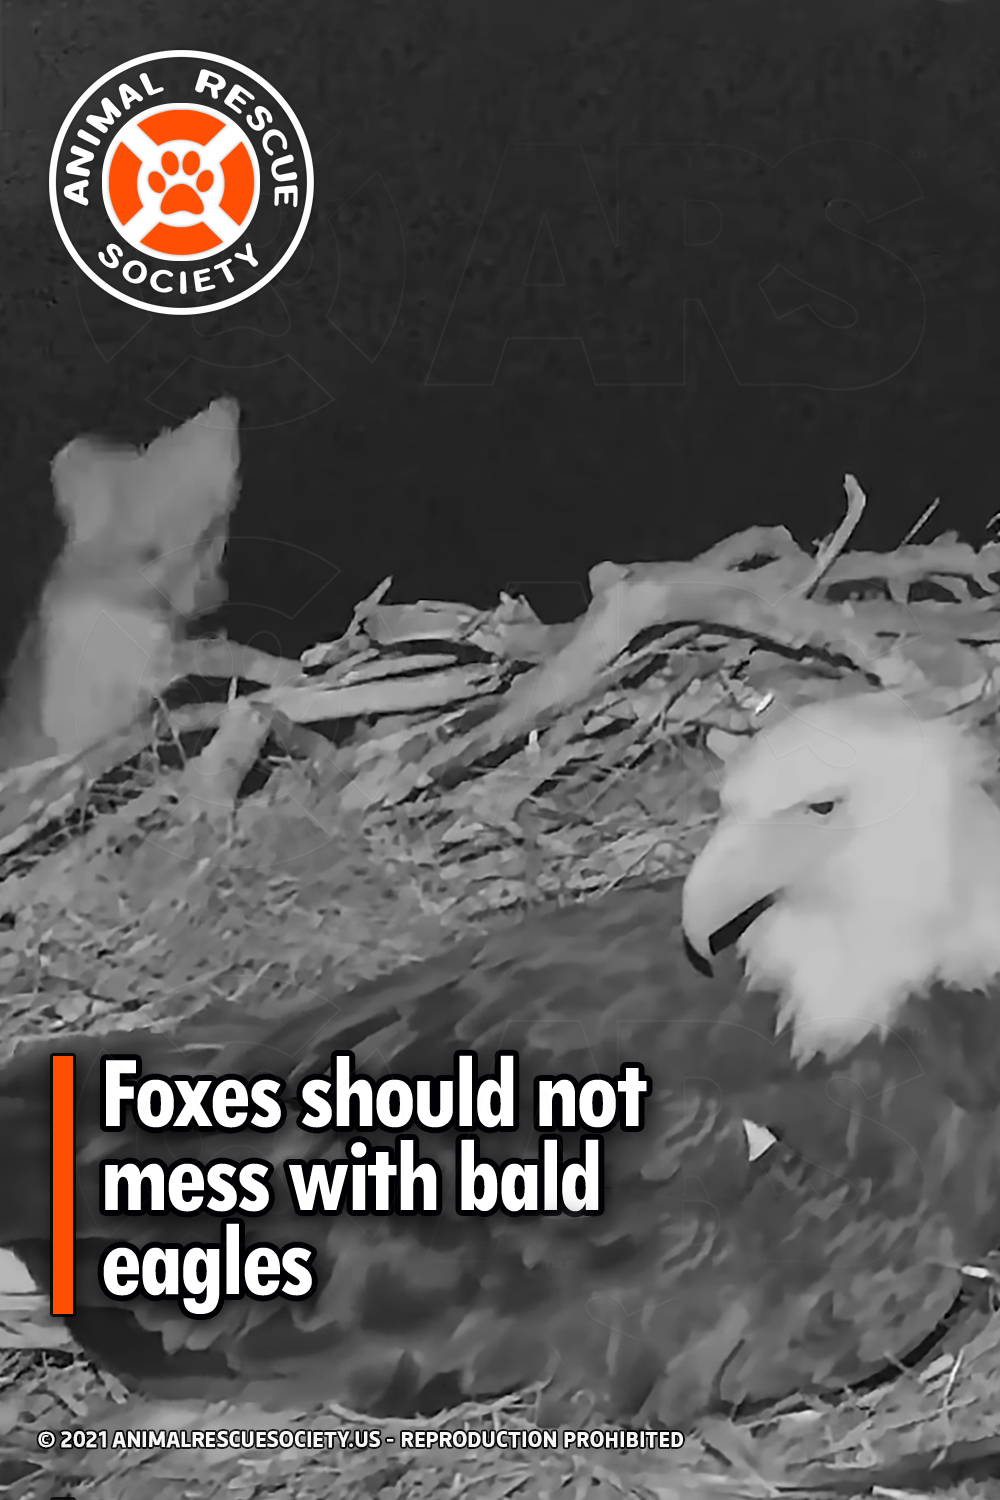 Foxes should not mess with bald eagles